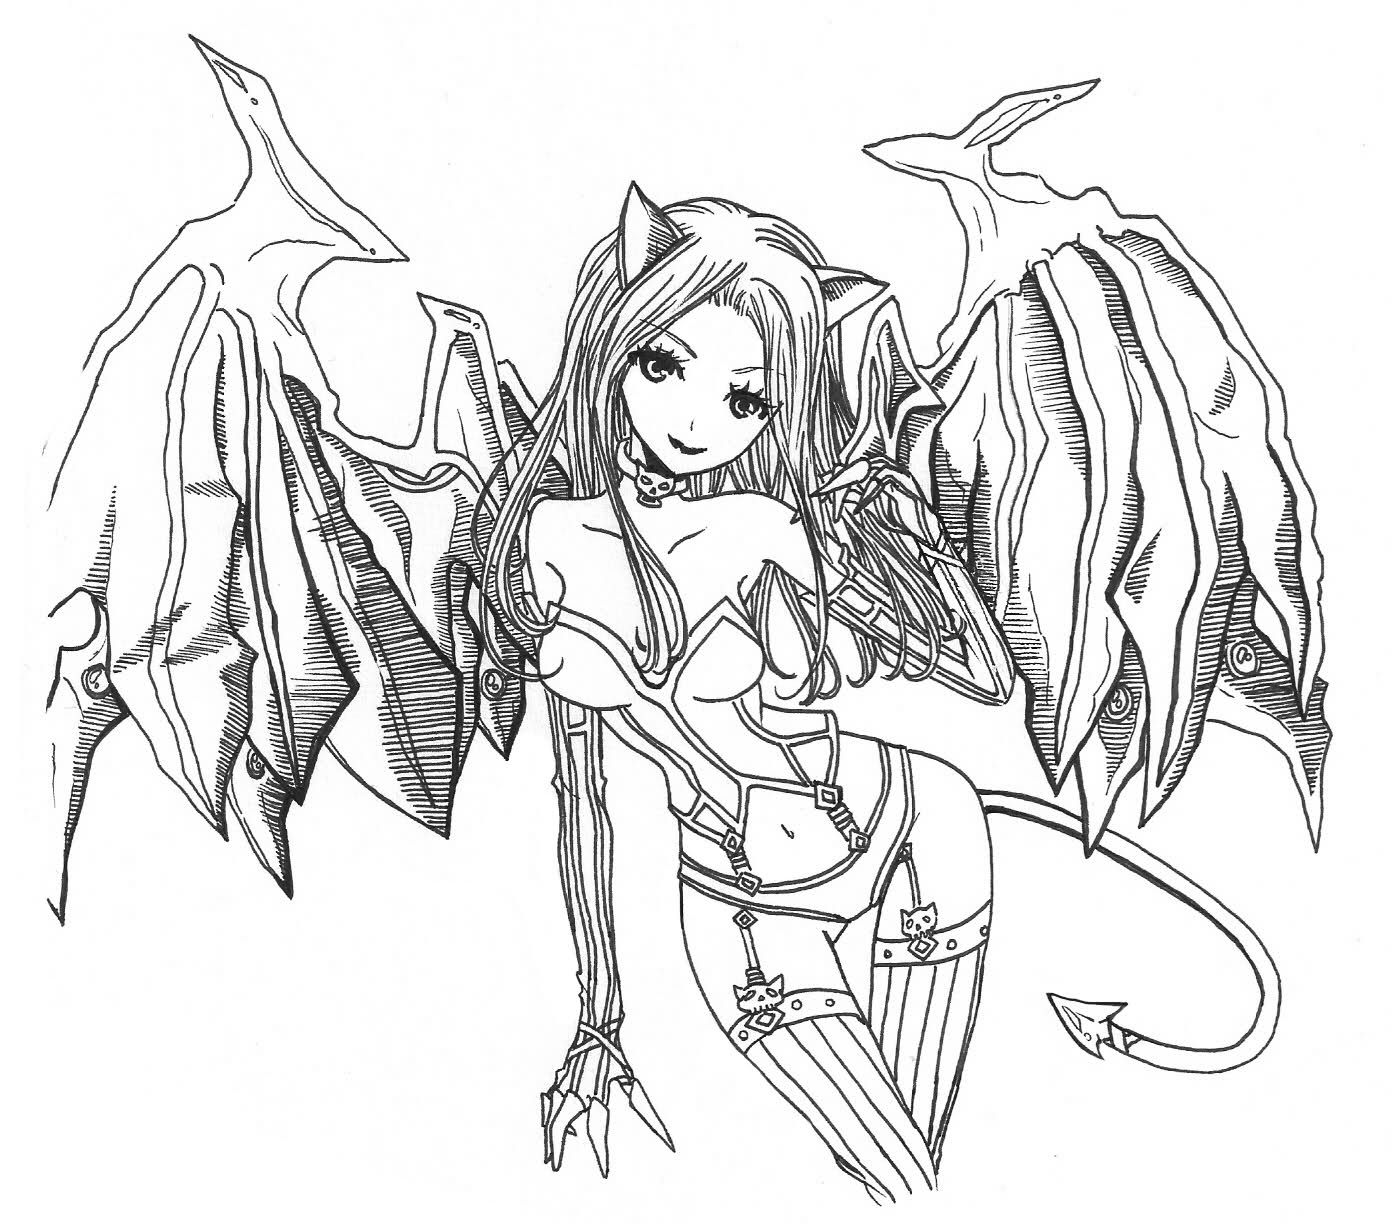 demon coloring pages for adults sexy coloring pages amp pictures imagixs - Sexy Coloring Pages